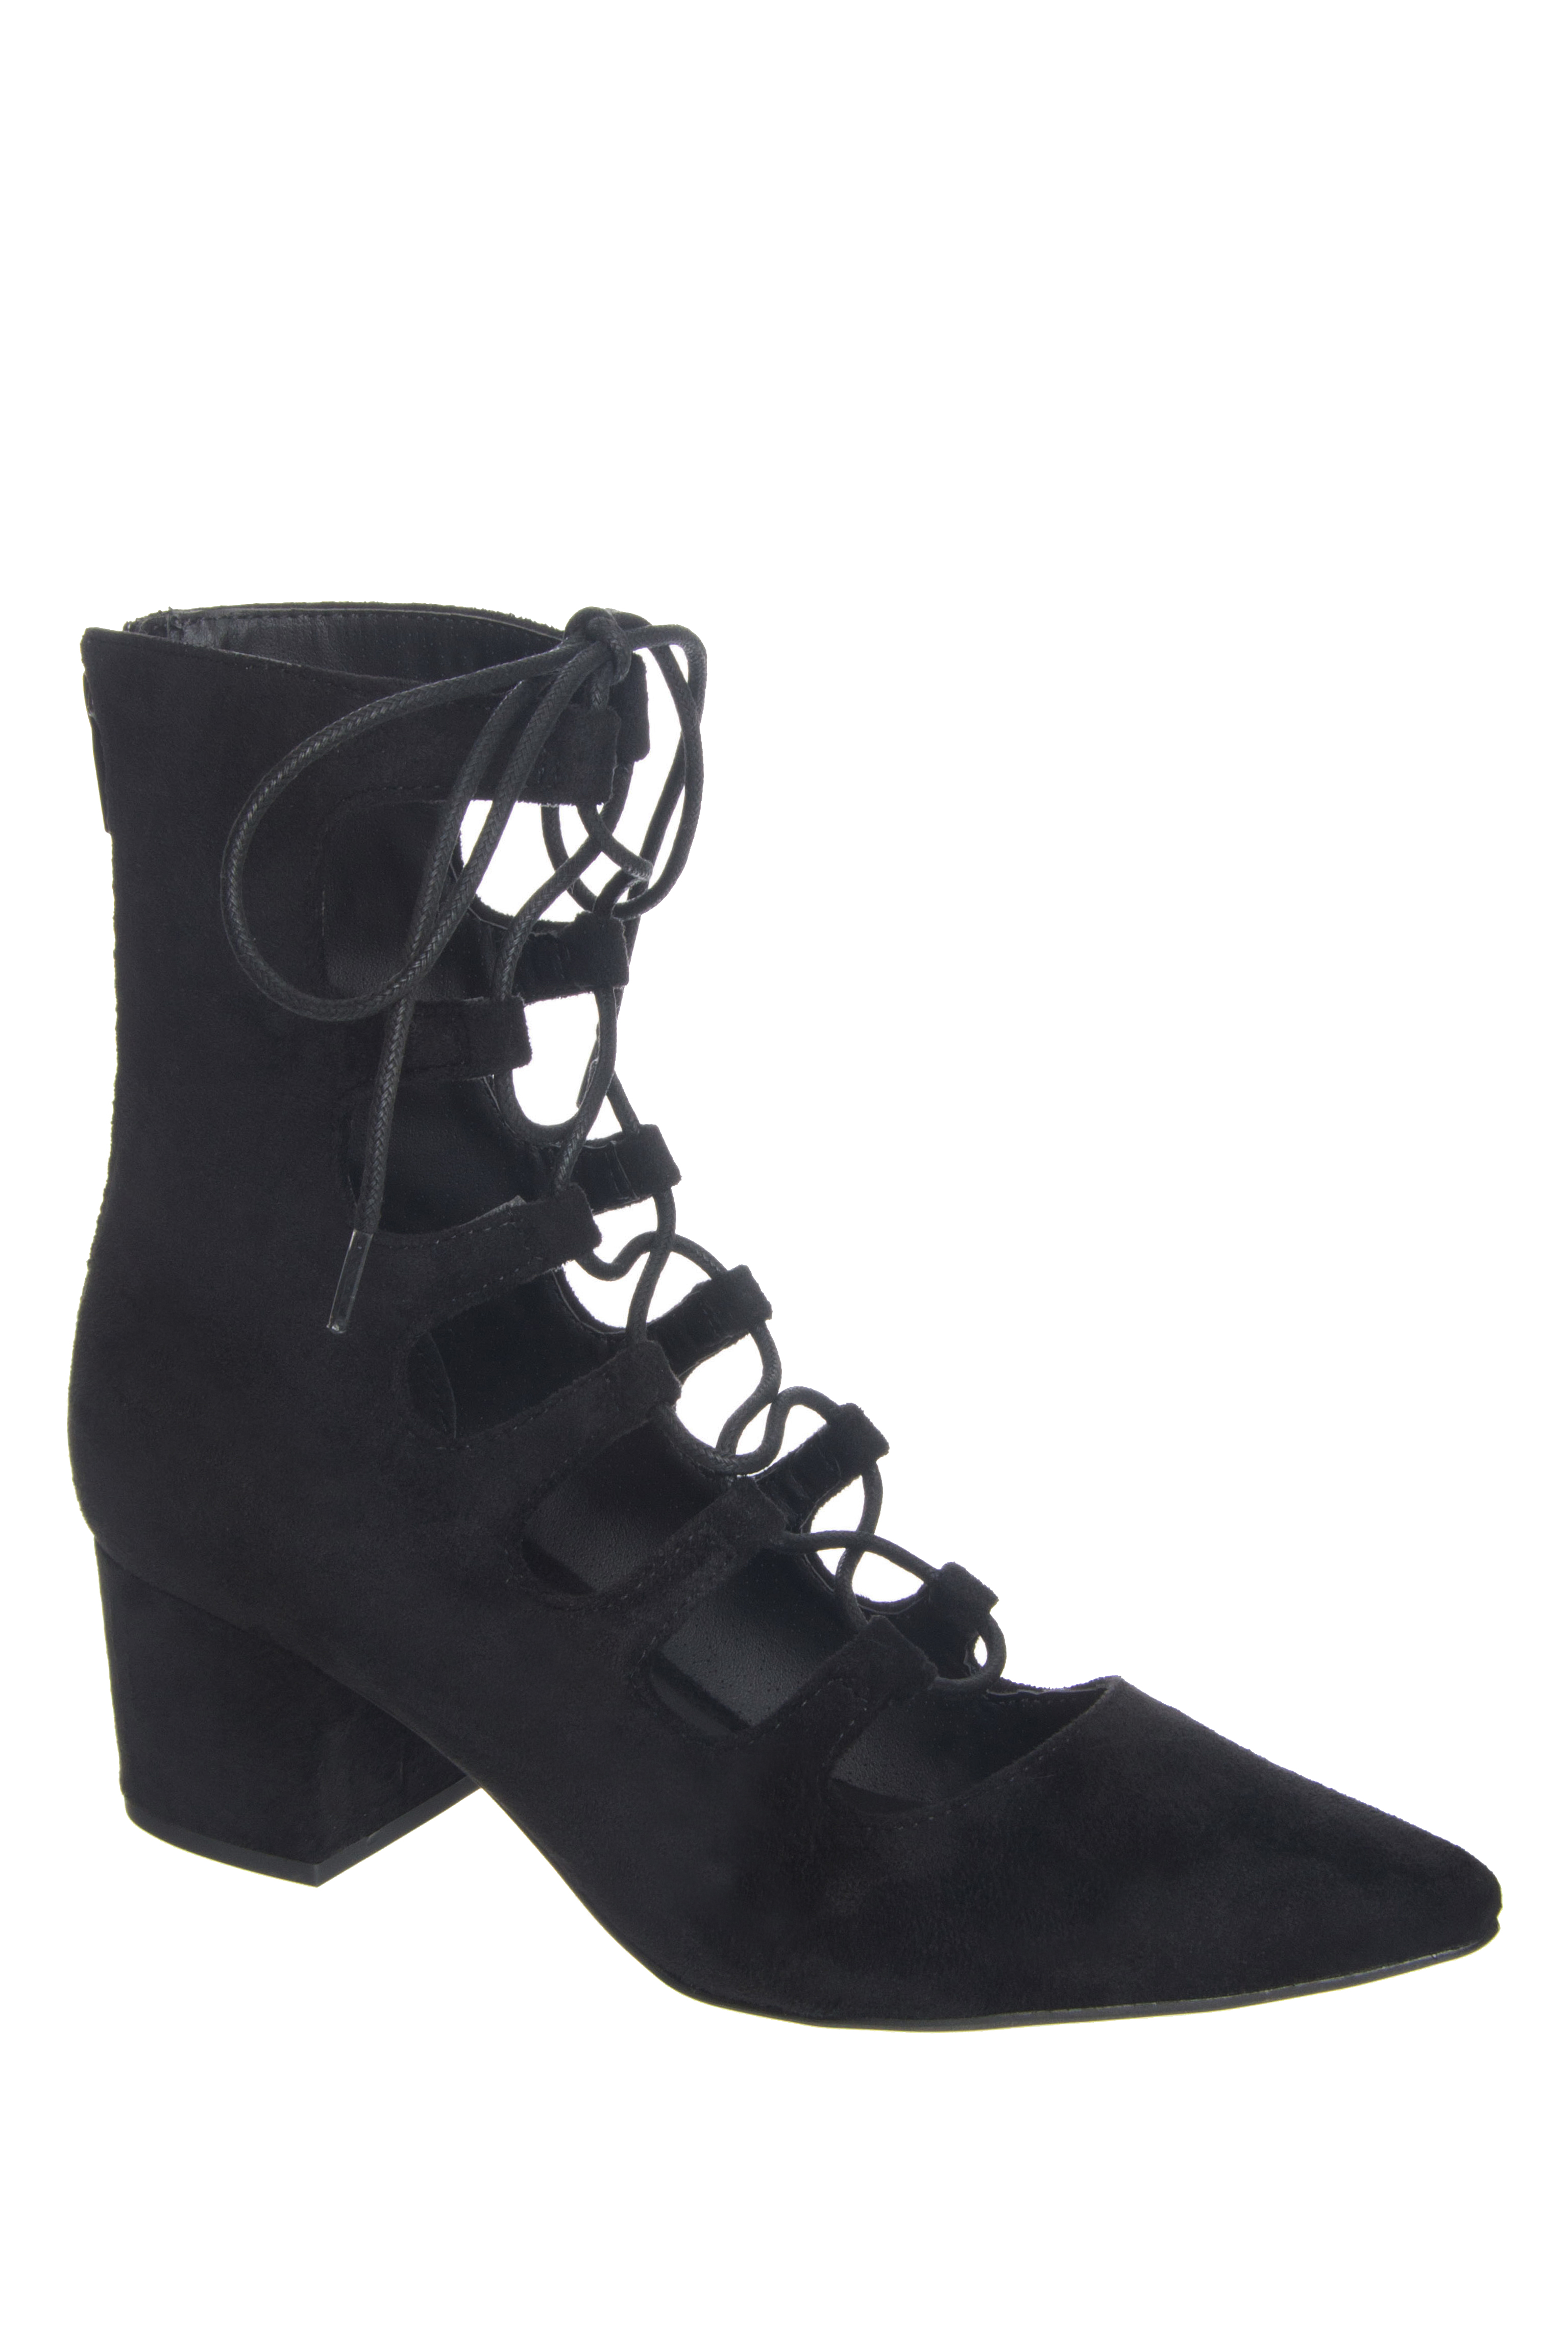 Coconuts by Matisse Sonia Mid Heel Lace Up Booties - Black